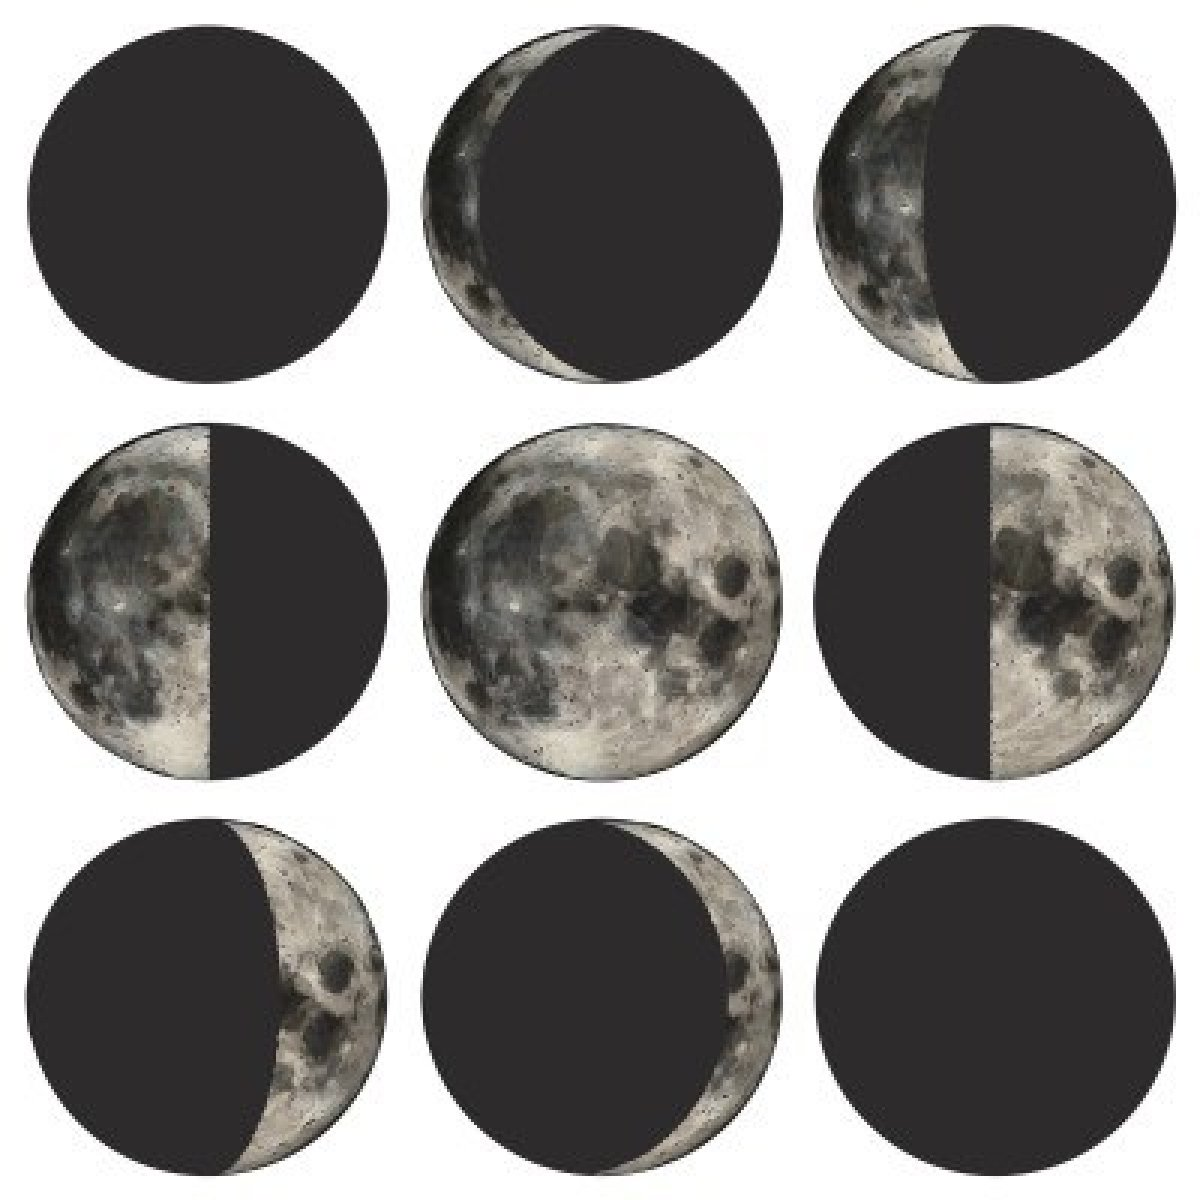 Do now will be to label the various phases of the moon.